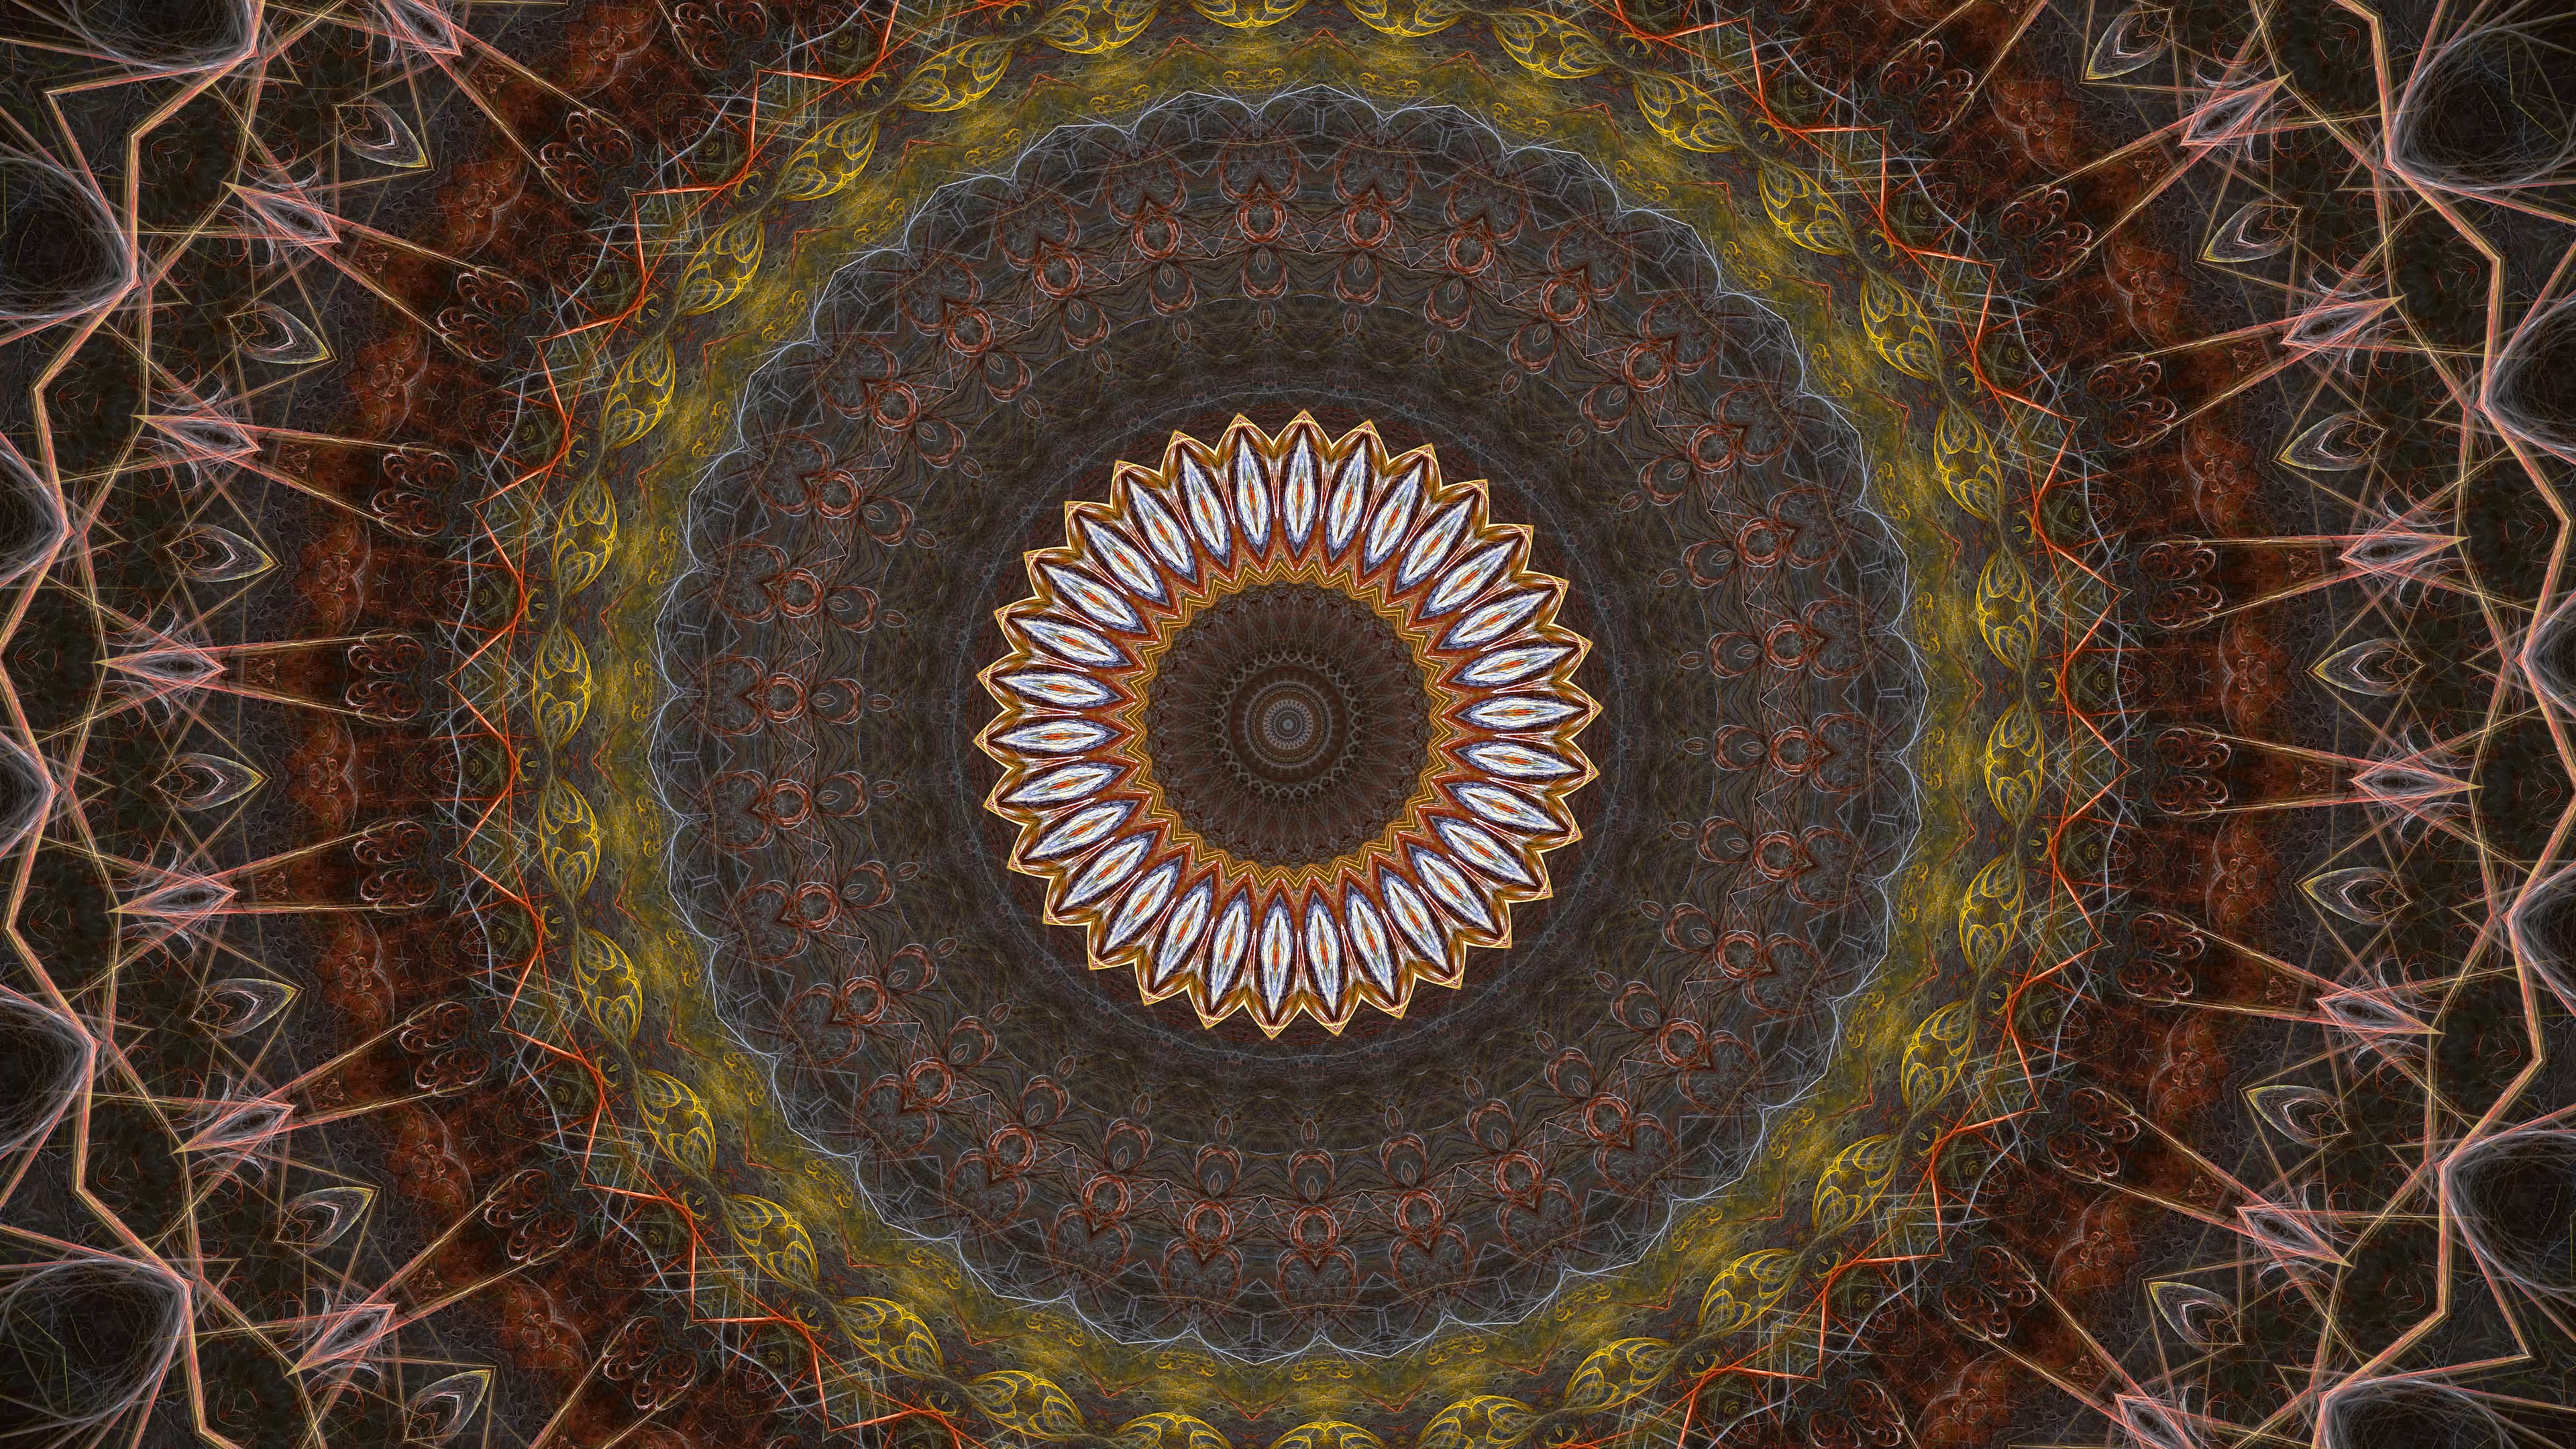 https://s3.amazonaws.com/media.define.com/4K-Gold-Fractal-Flame-Radial-Kaleidoscope-with-Lots-of-Lines-and-Detail.png